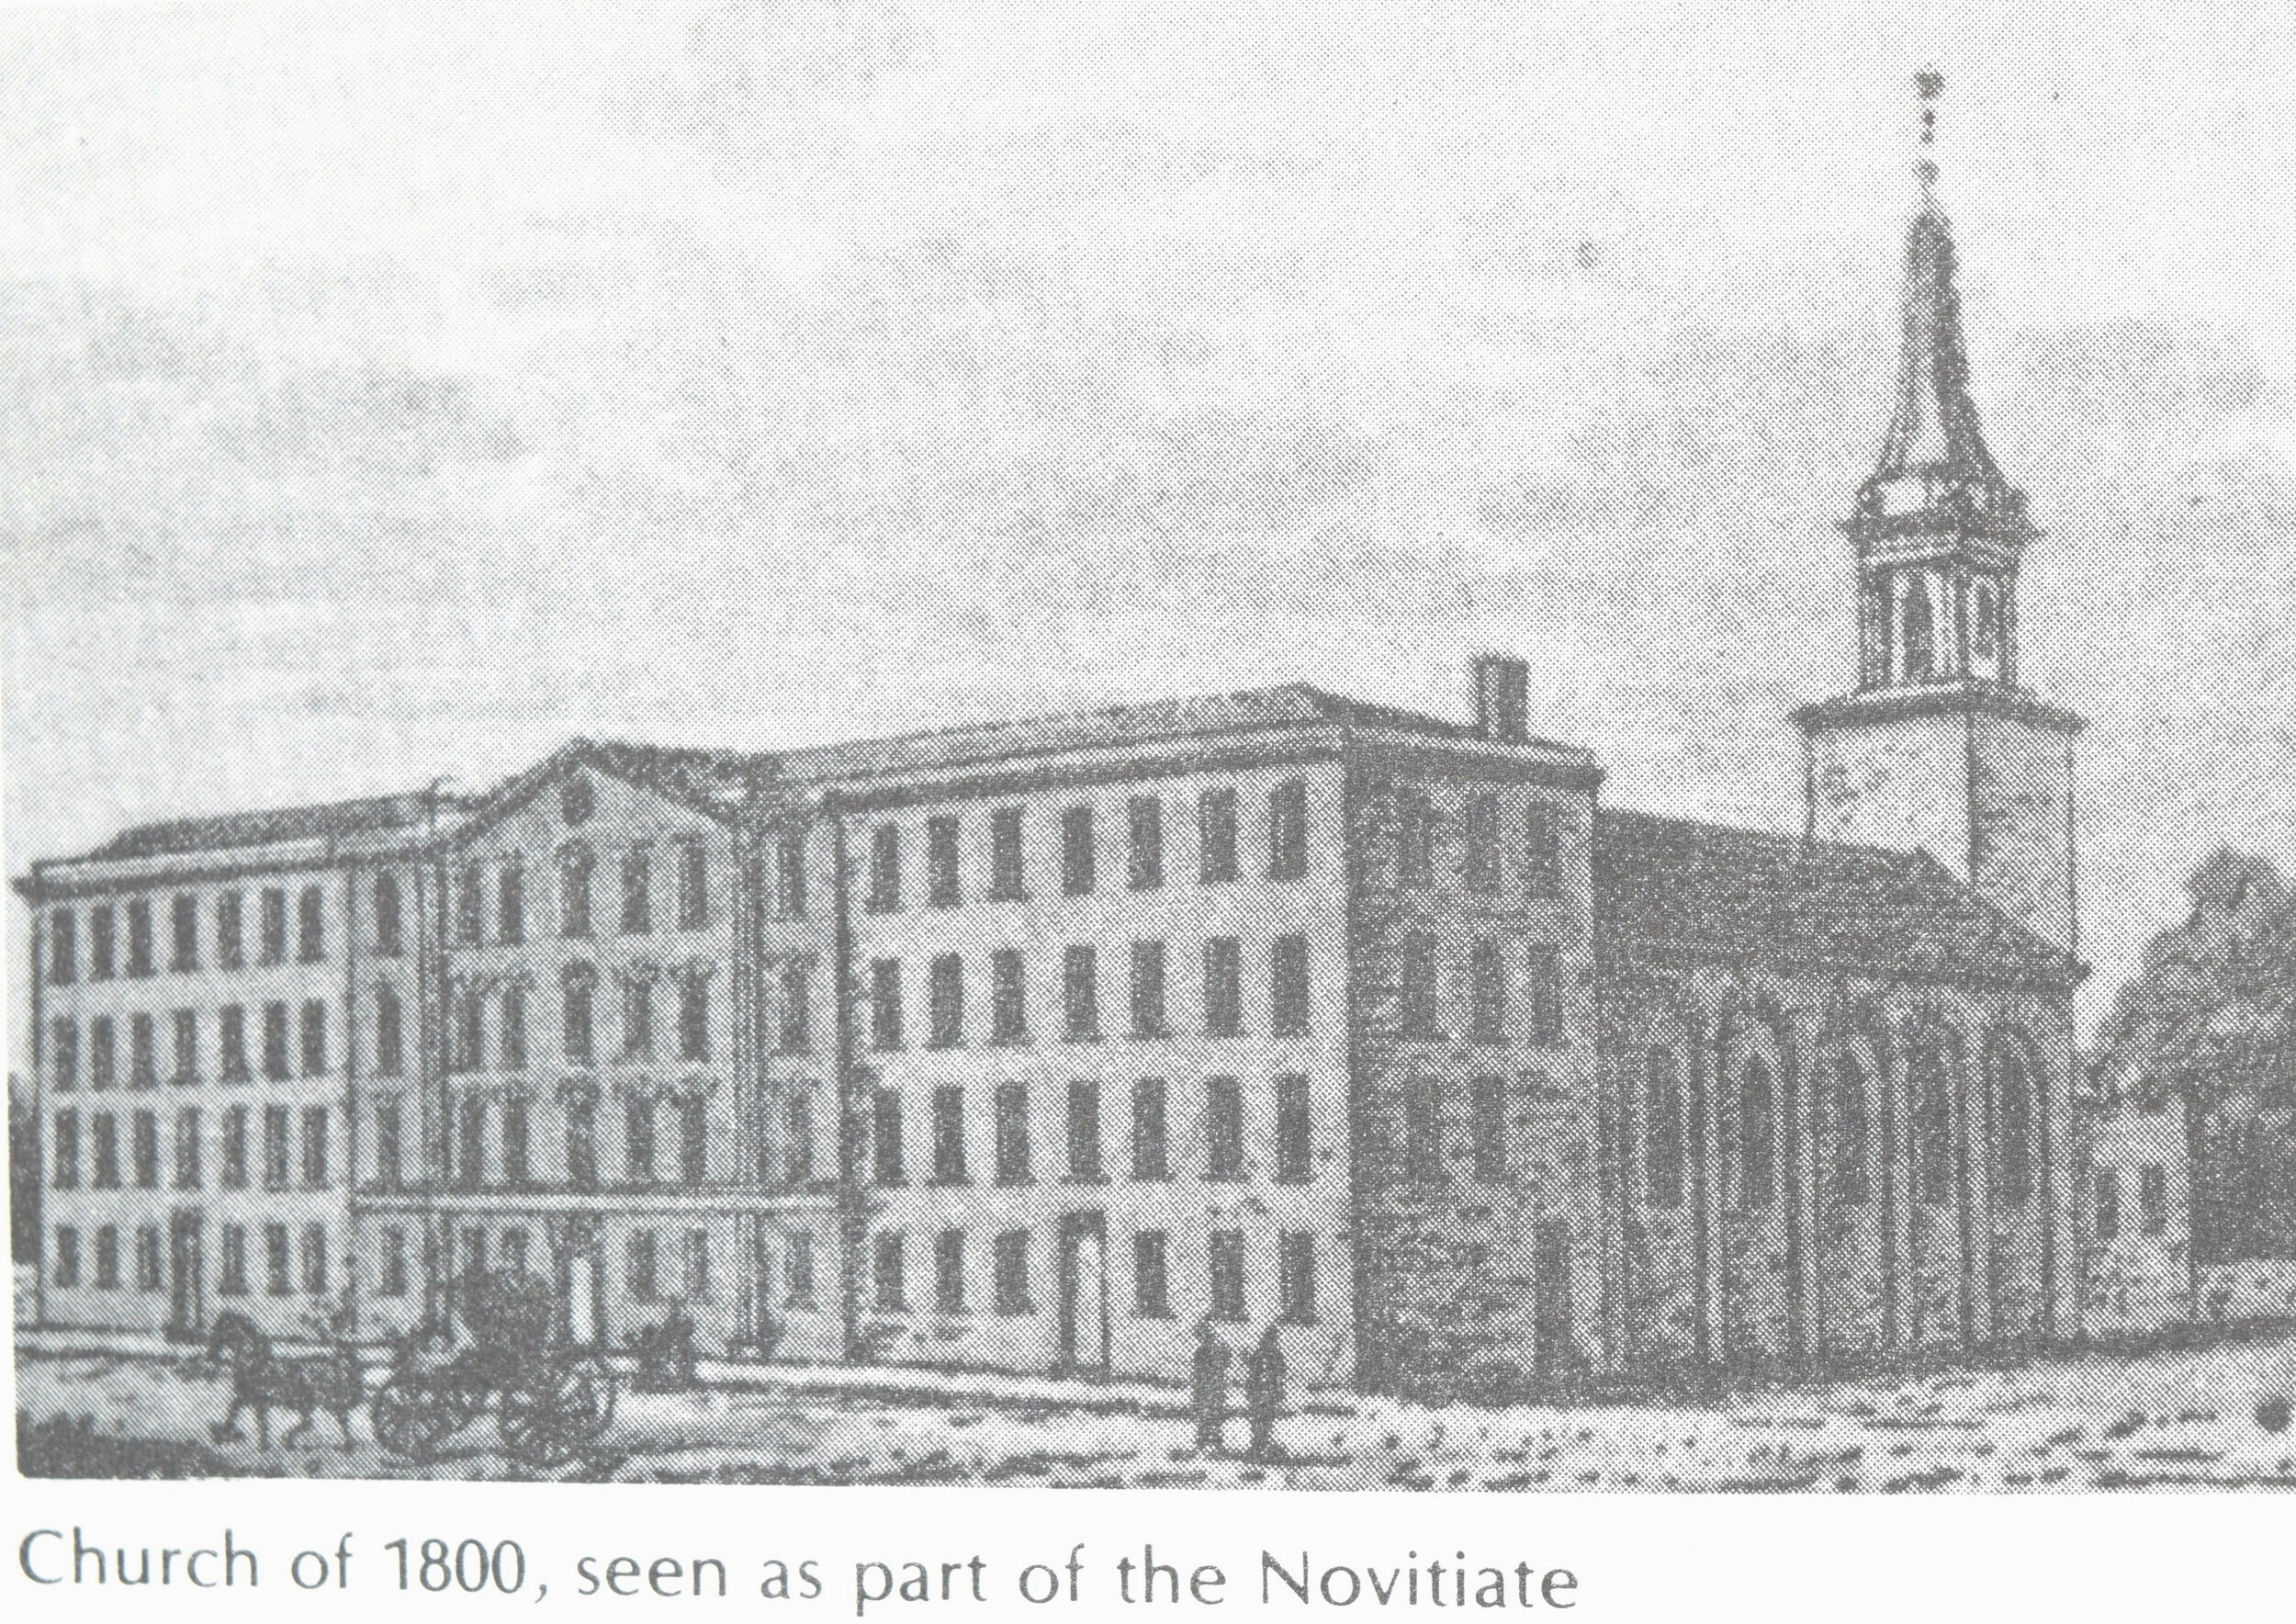 This is the Church of John Dubois as it looked in 1858 as part of the Novitiate, before the removal of the tower.